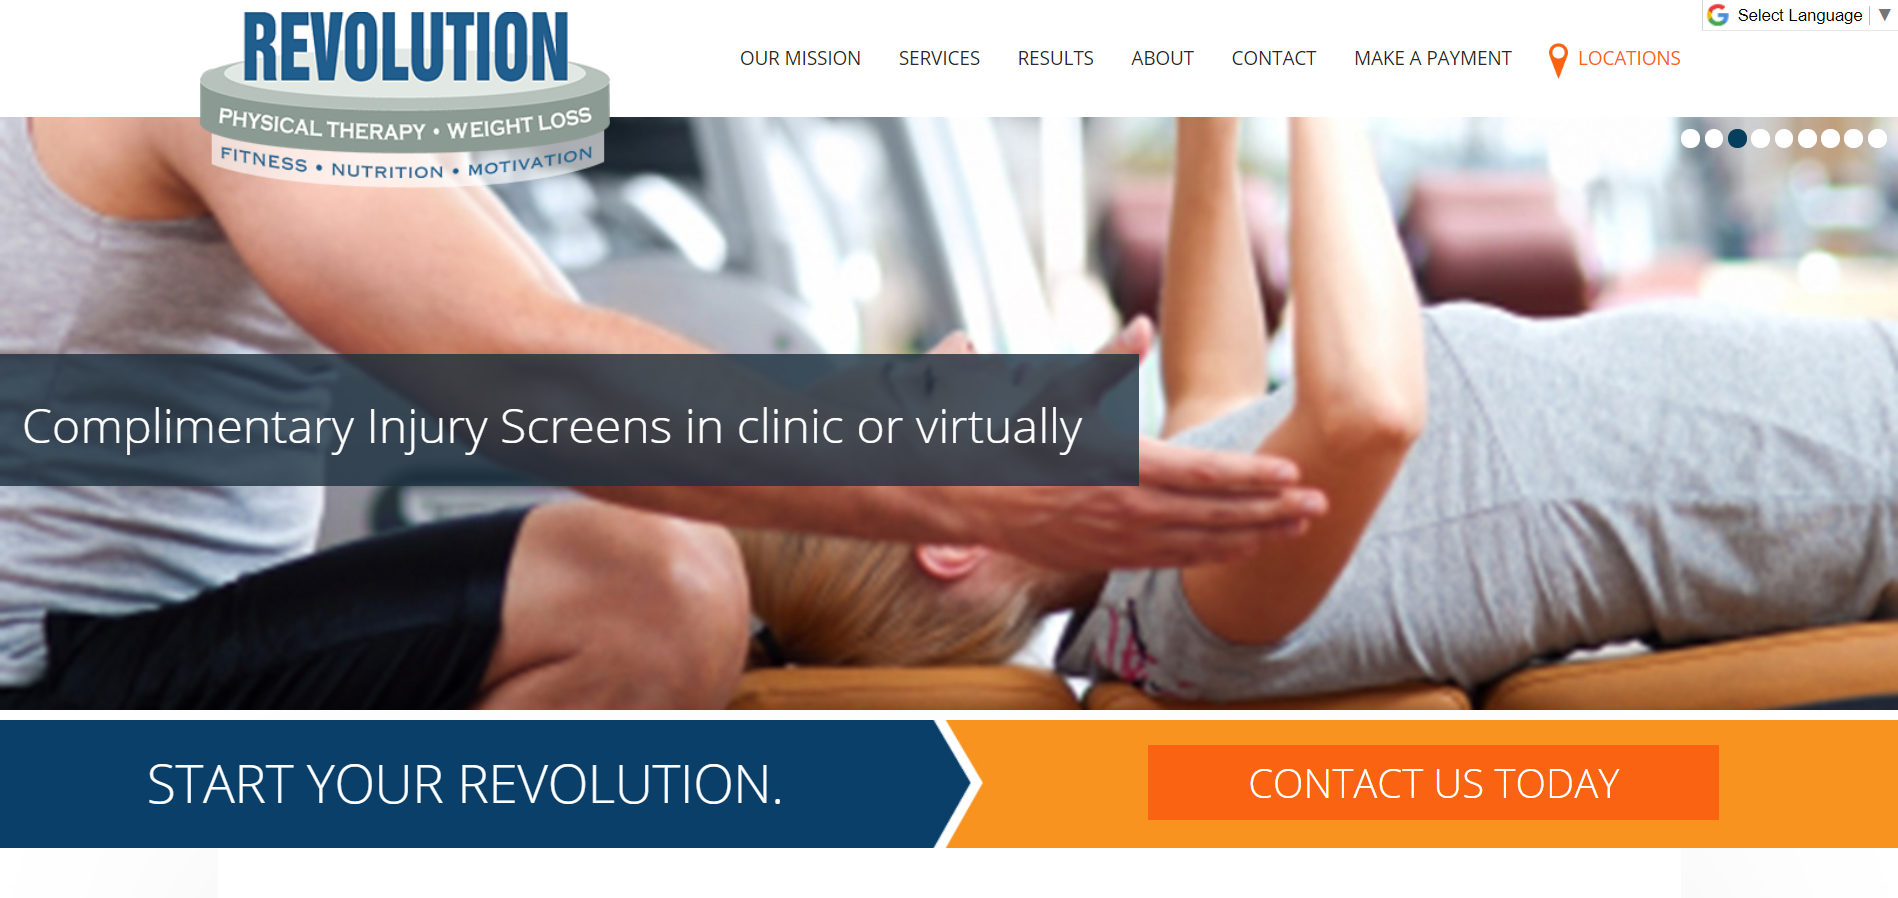 Revolution Physical Therapy and Weight Loss